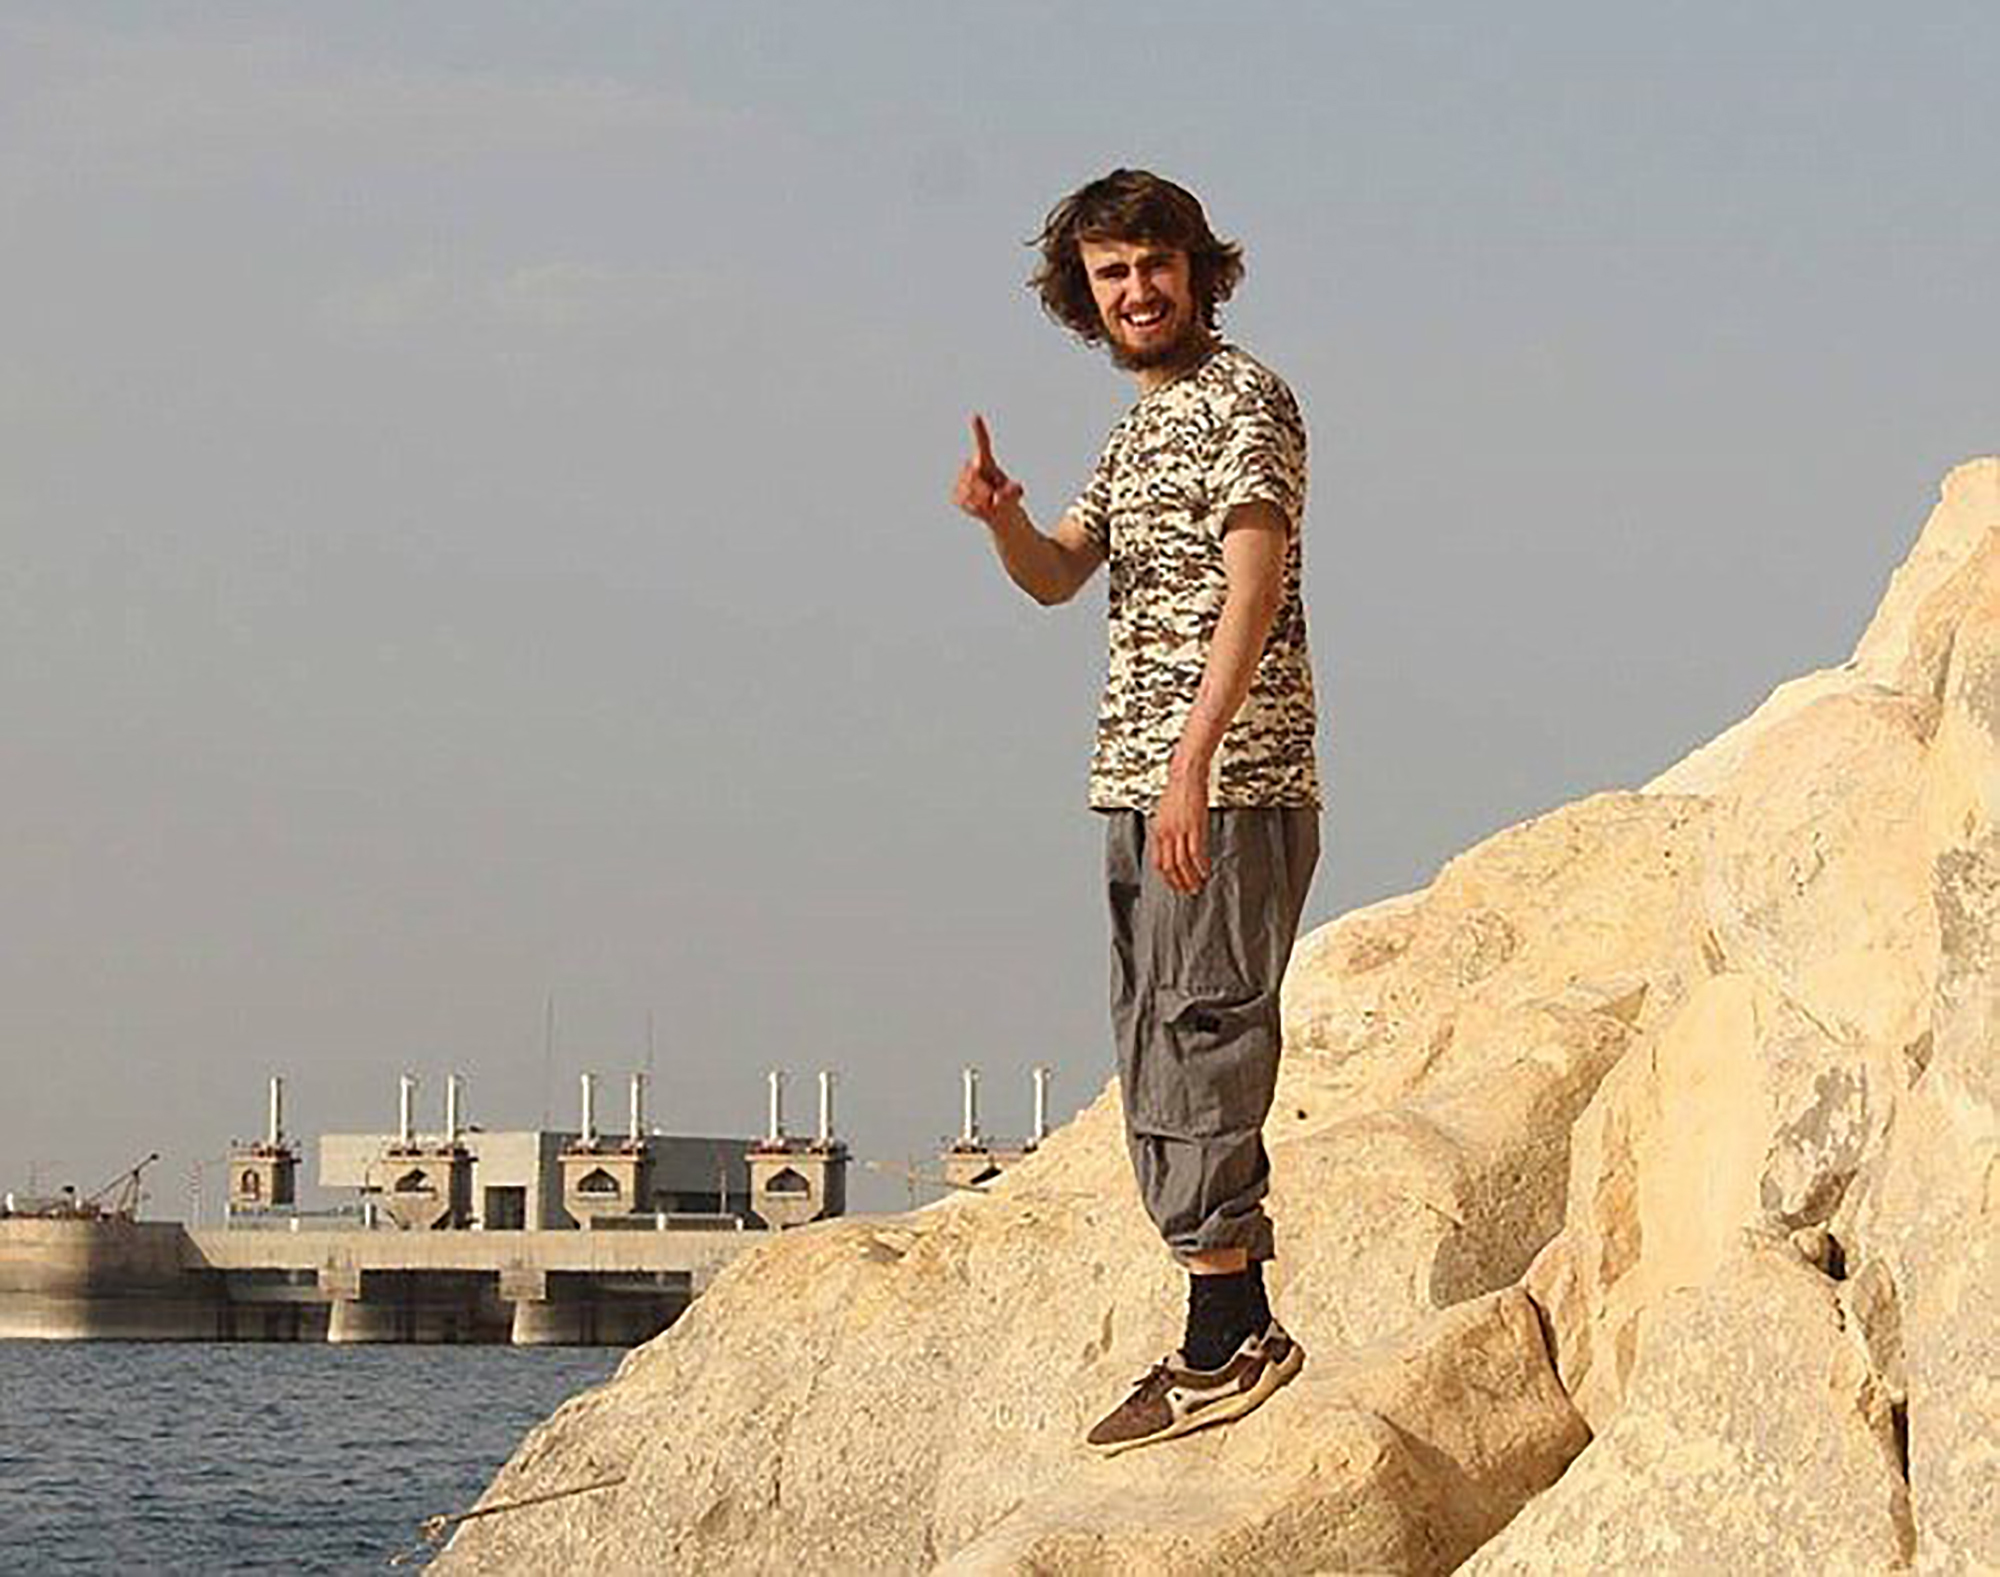 Jack Letts pictured at the Tabqa Dam, on the Euphrates 25 miles outside Raqqa in Syria.